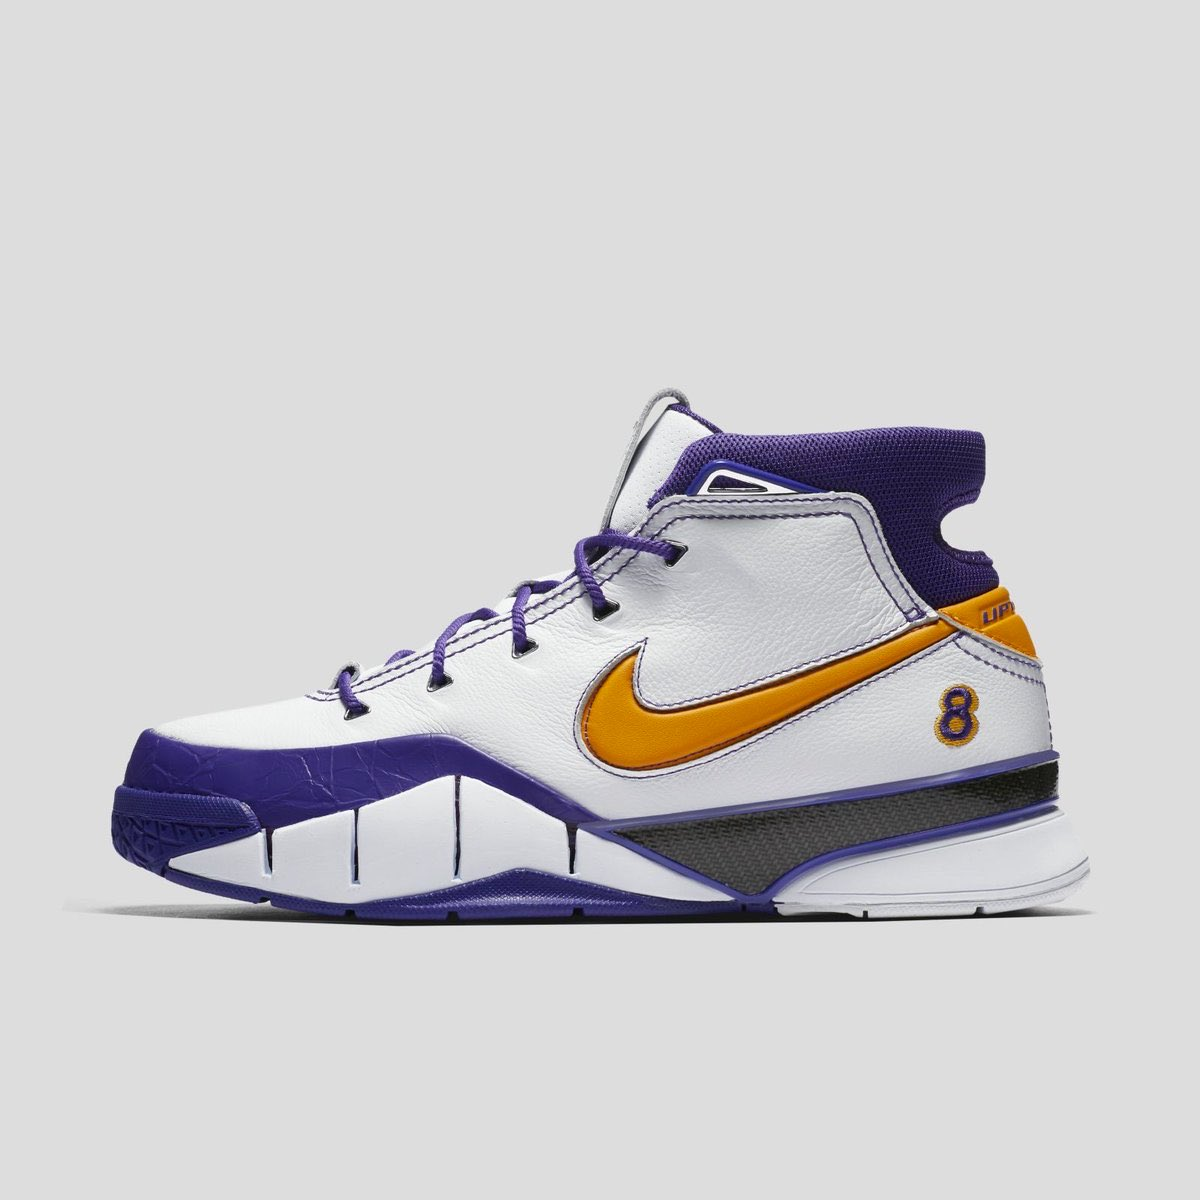 wholesale dealer dd557 95267 Restock Nike Zoom Kobe 1 Protro